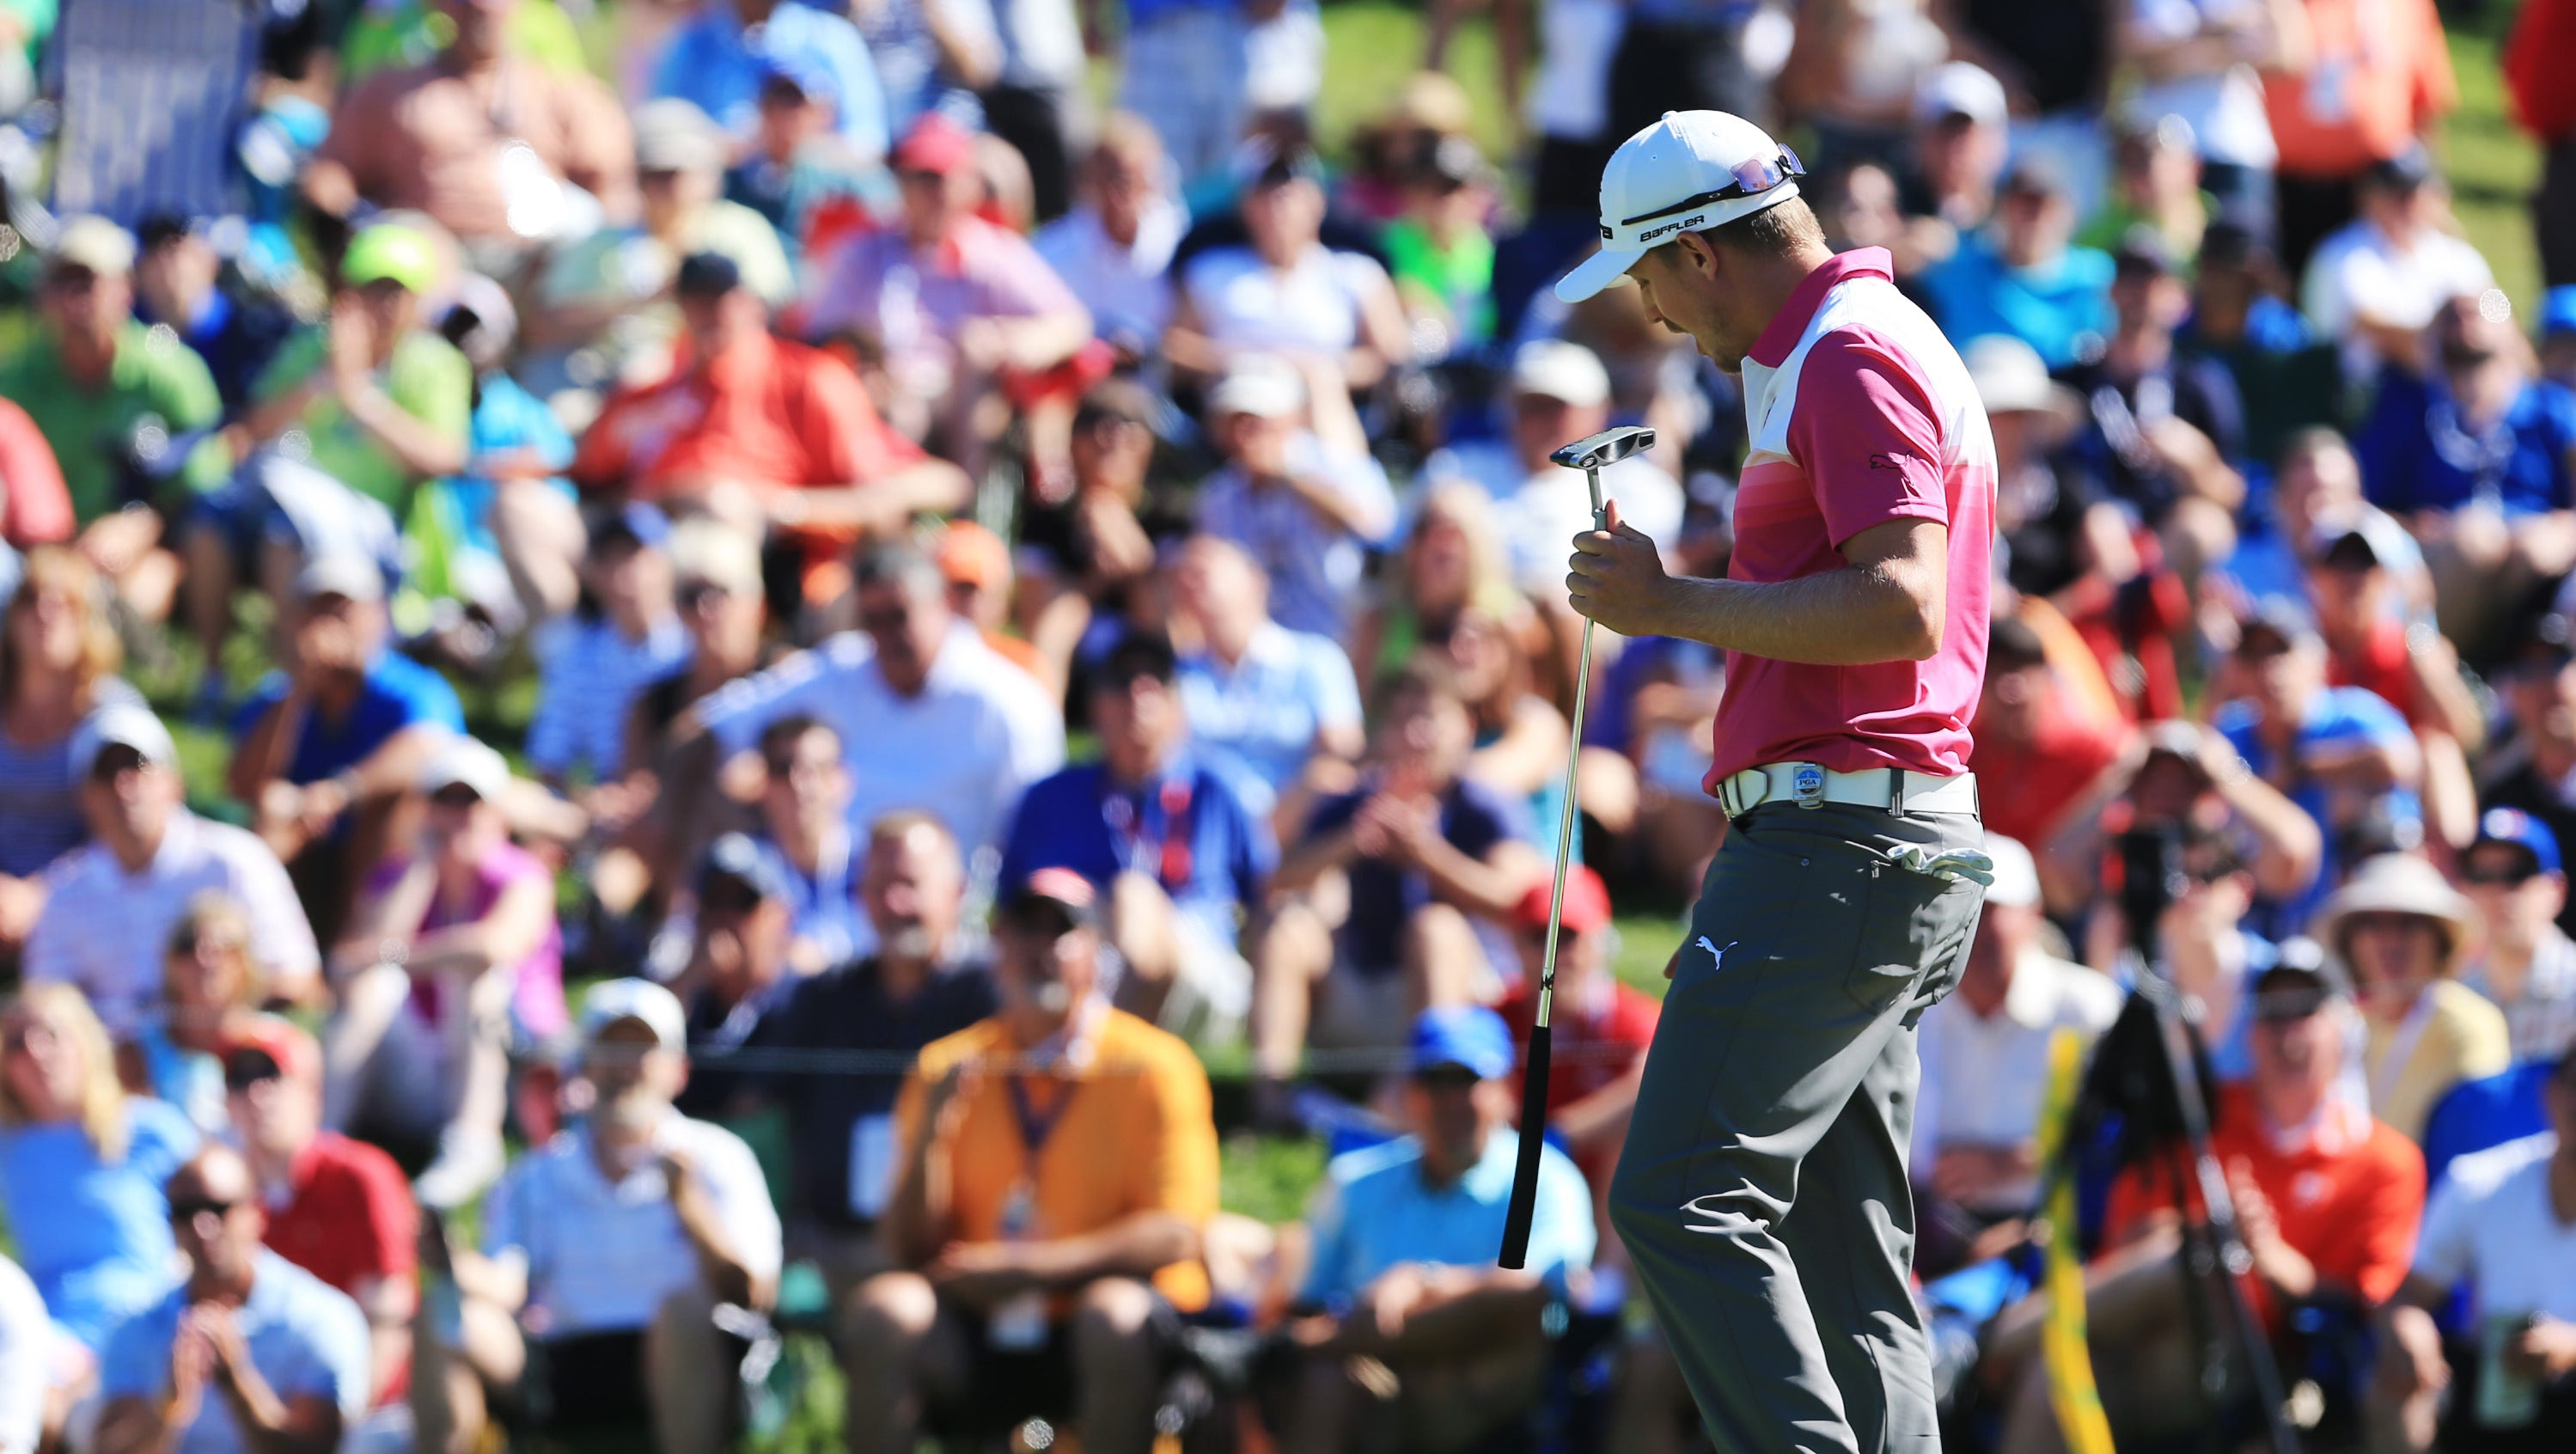 Jonas Blixt reacts to his missed putt at No. 8. Blixt shot a 4-under 66 to get to -6.